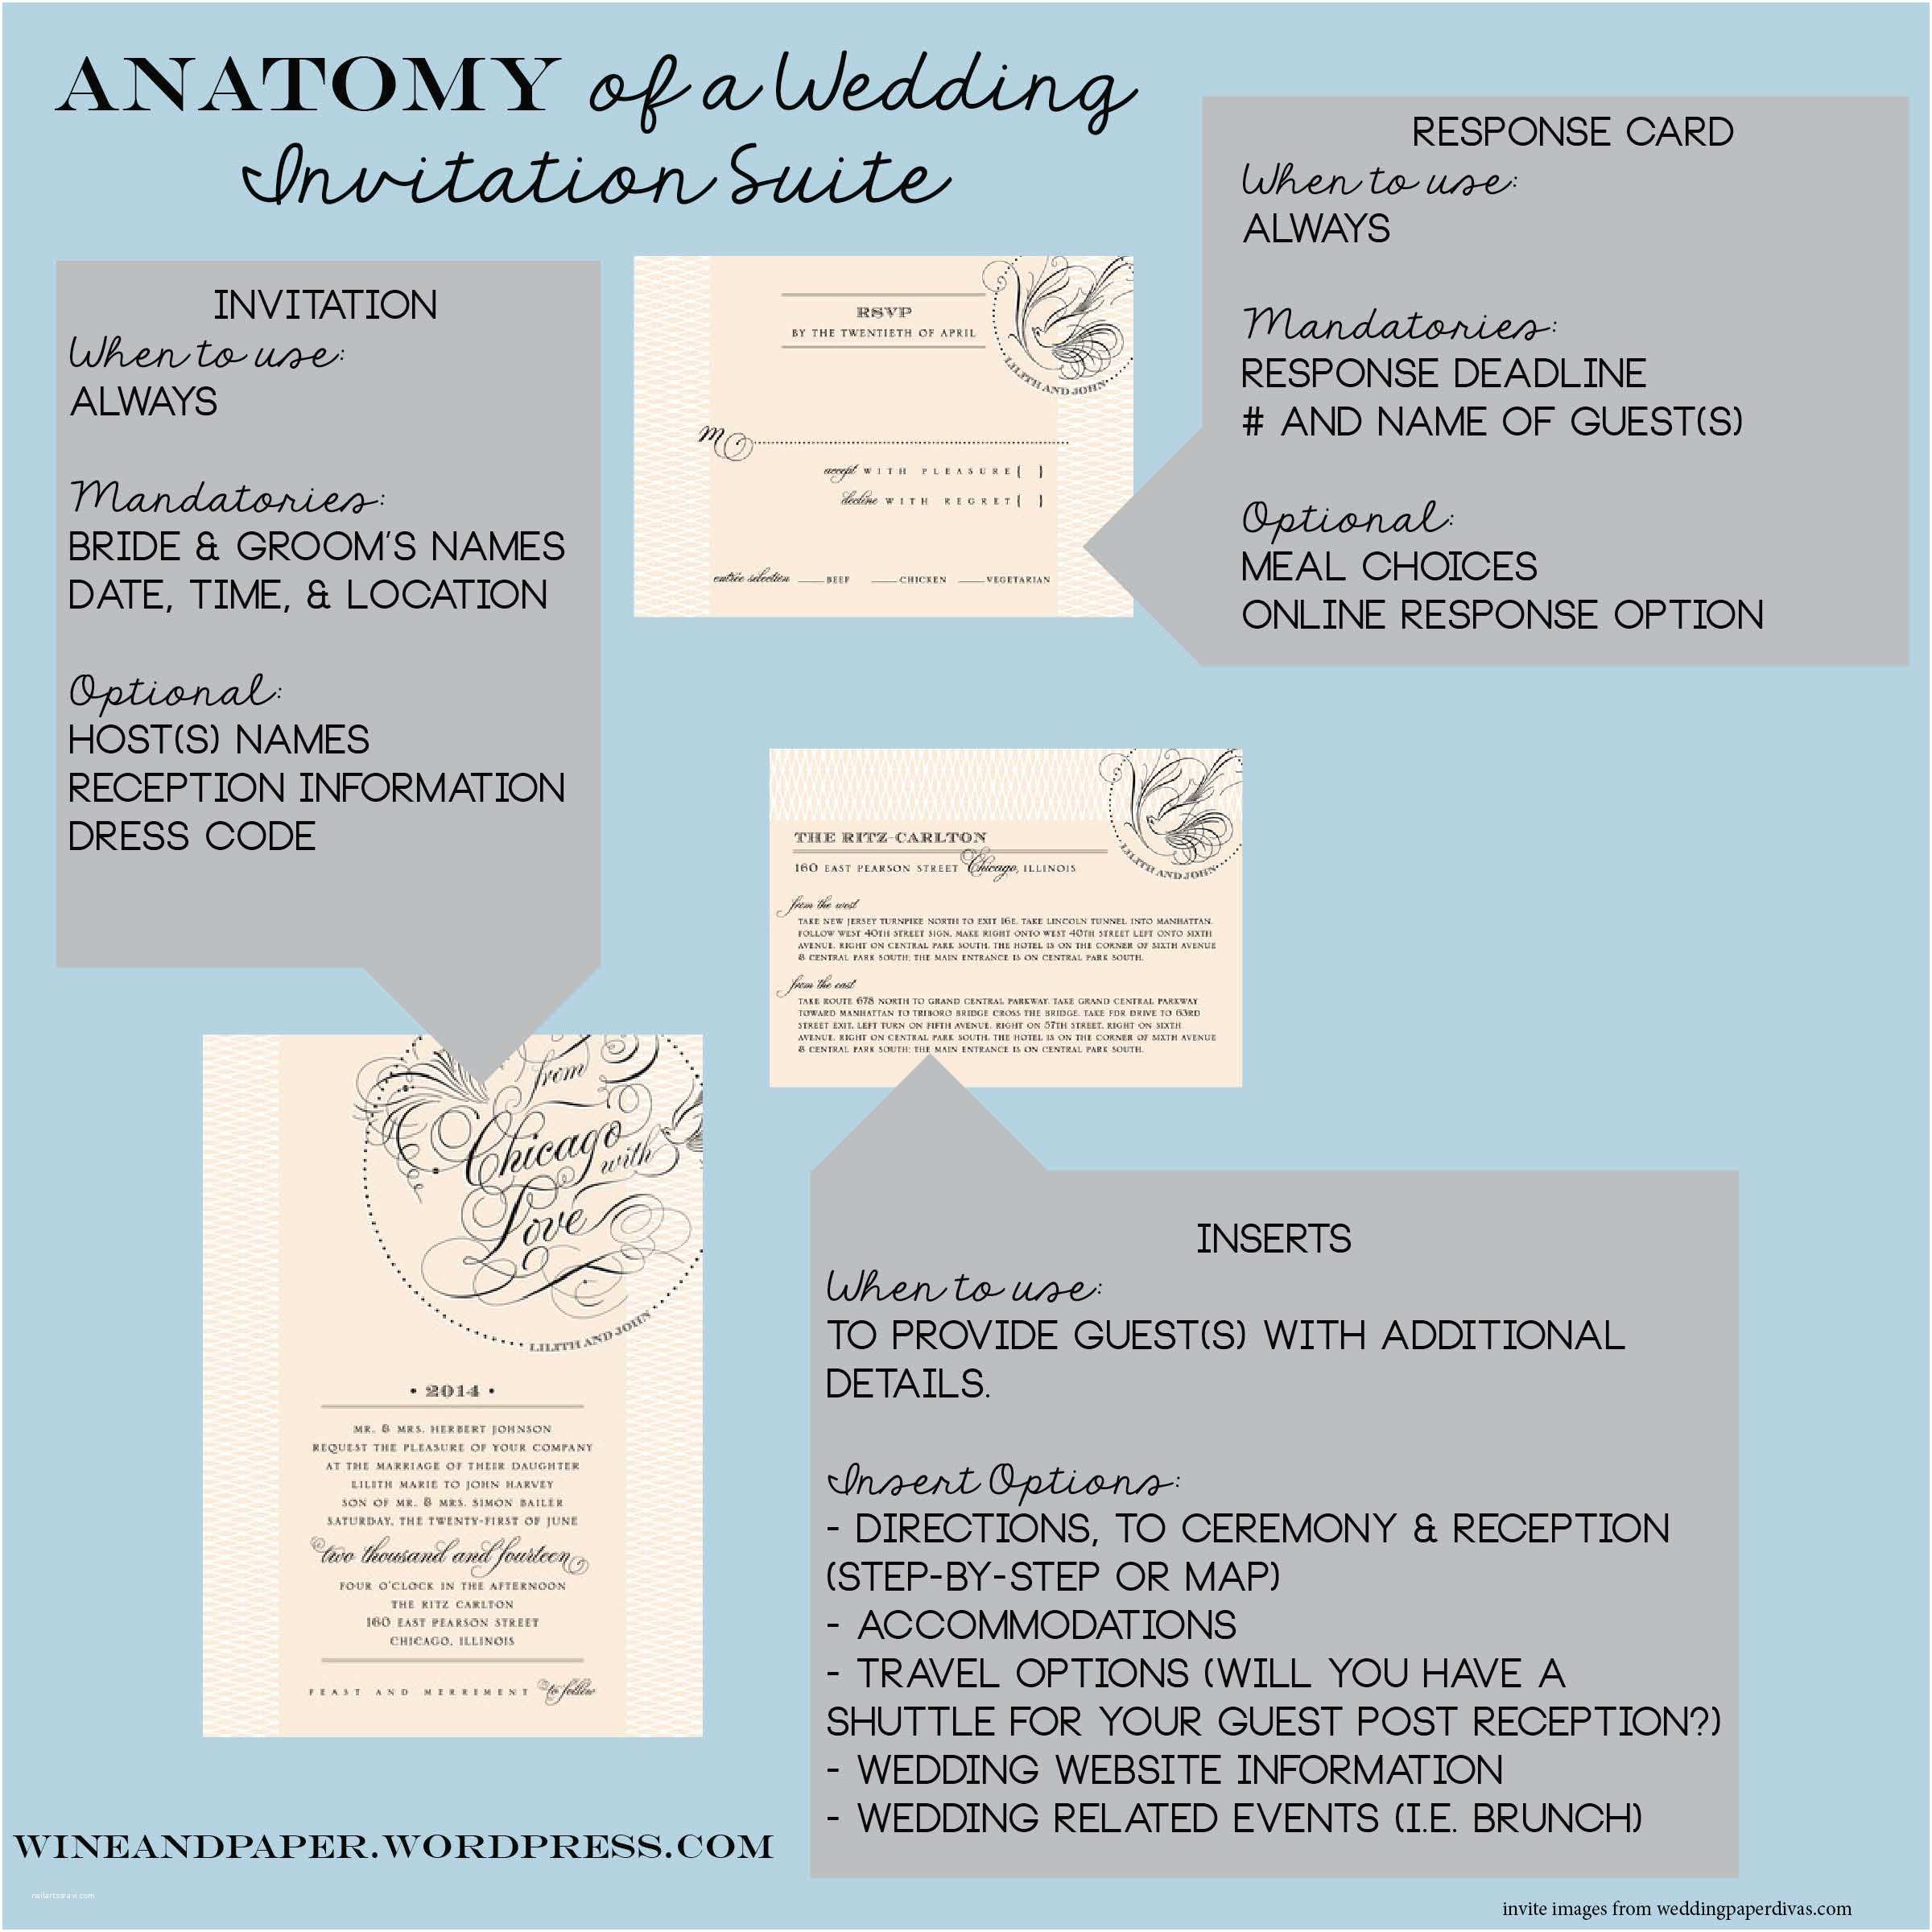 What is Included In A Wedding Invitation Suite the Anatomy Of A Wedding Invitation Suite